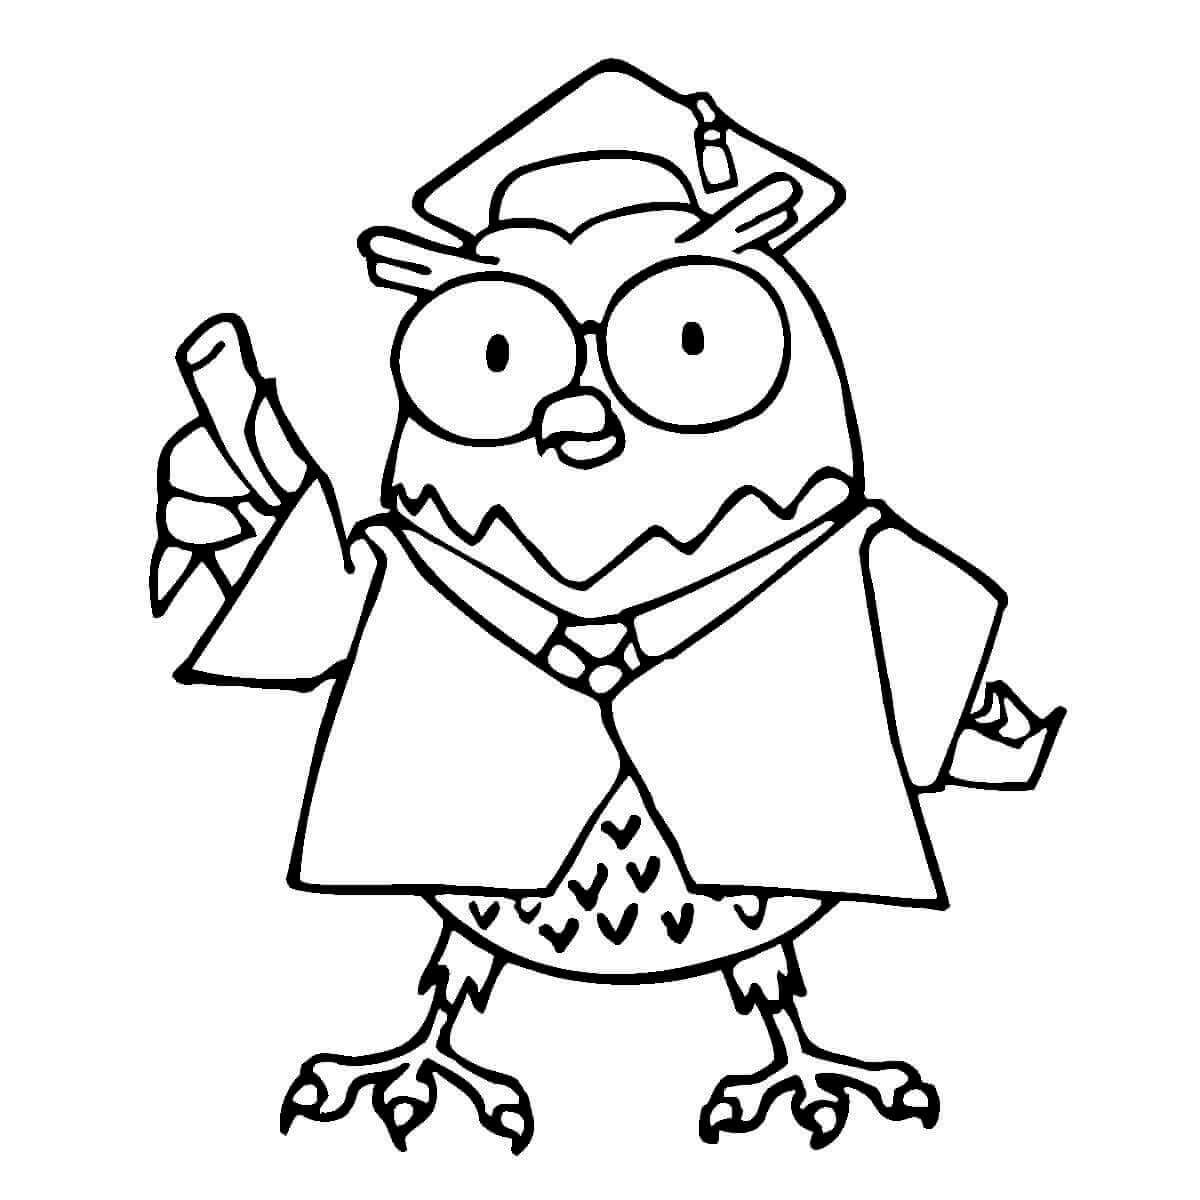 Professor Owl Coloring Page